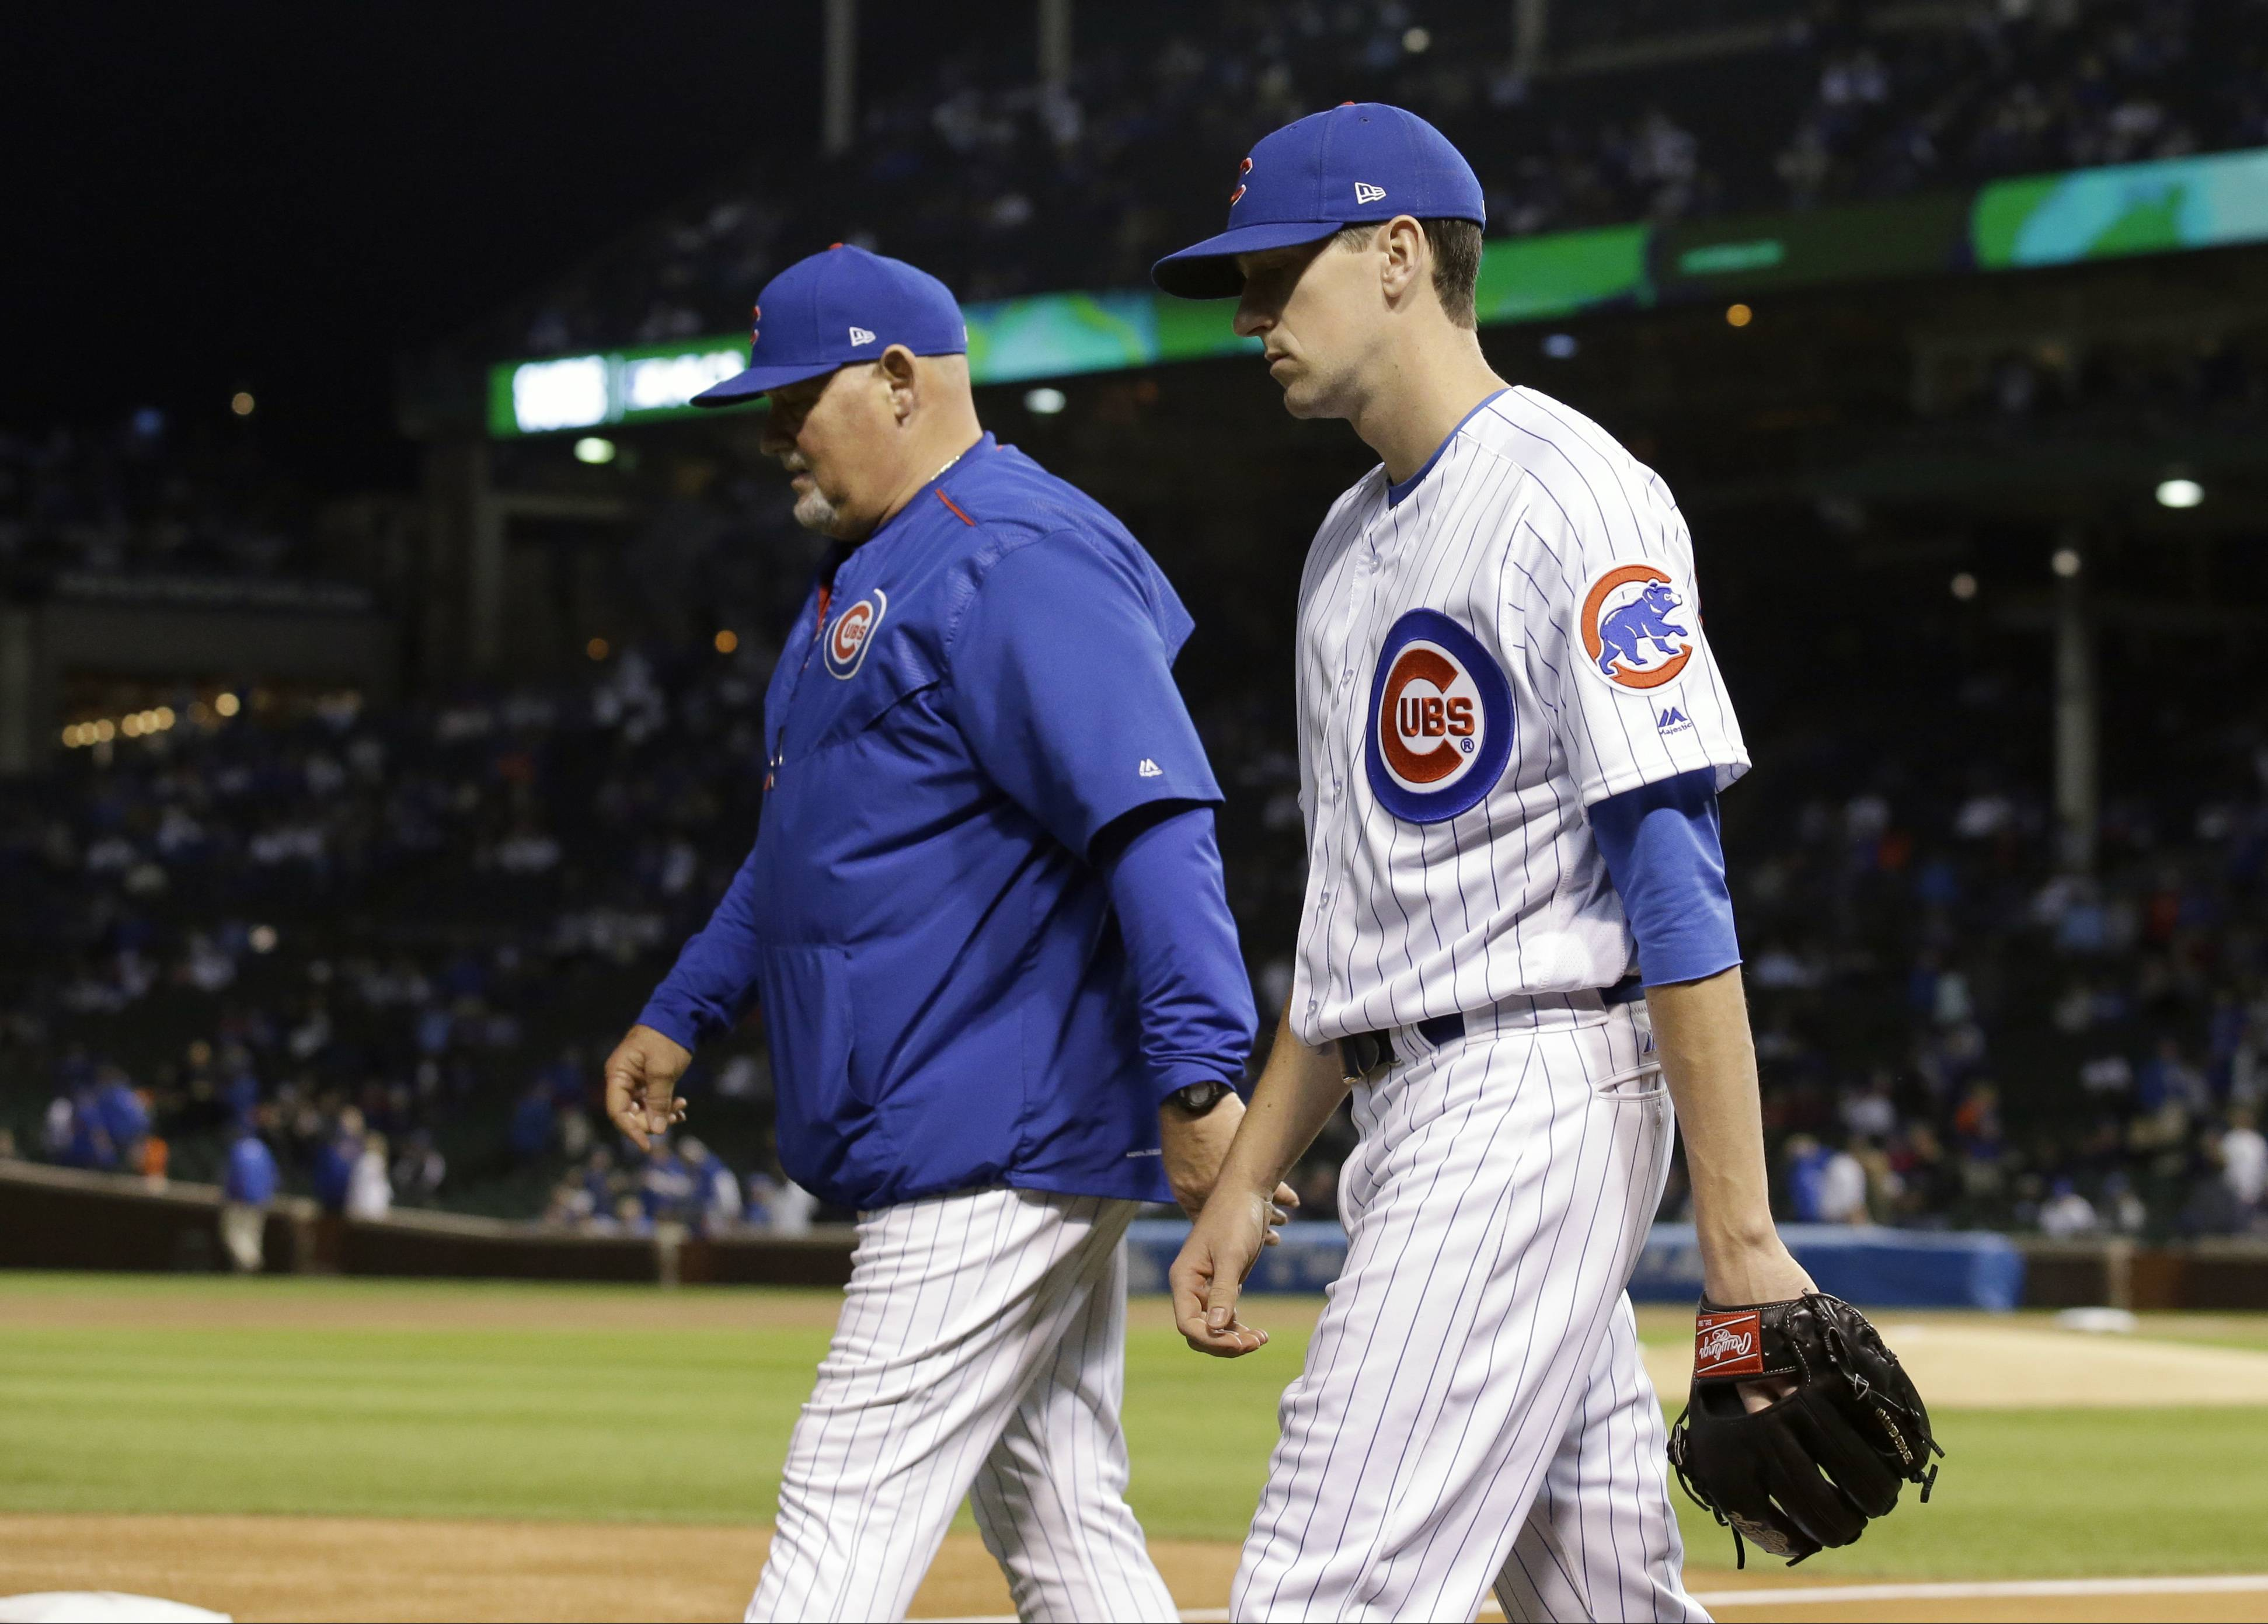 Chicago Cubs' Kyle Hendricks, right, walks to bullpen to warm up with pitching coach Chris Bosio before Game 3 of baseball's National League championship series against the Los Angeles Dodgers, Tuesday, Oct. 17, 2017.